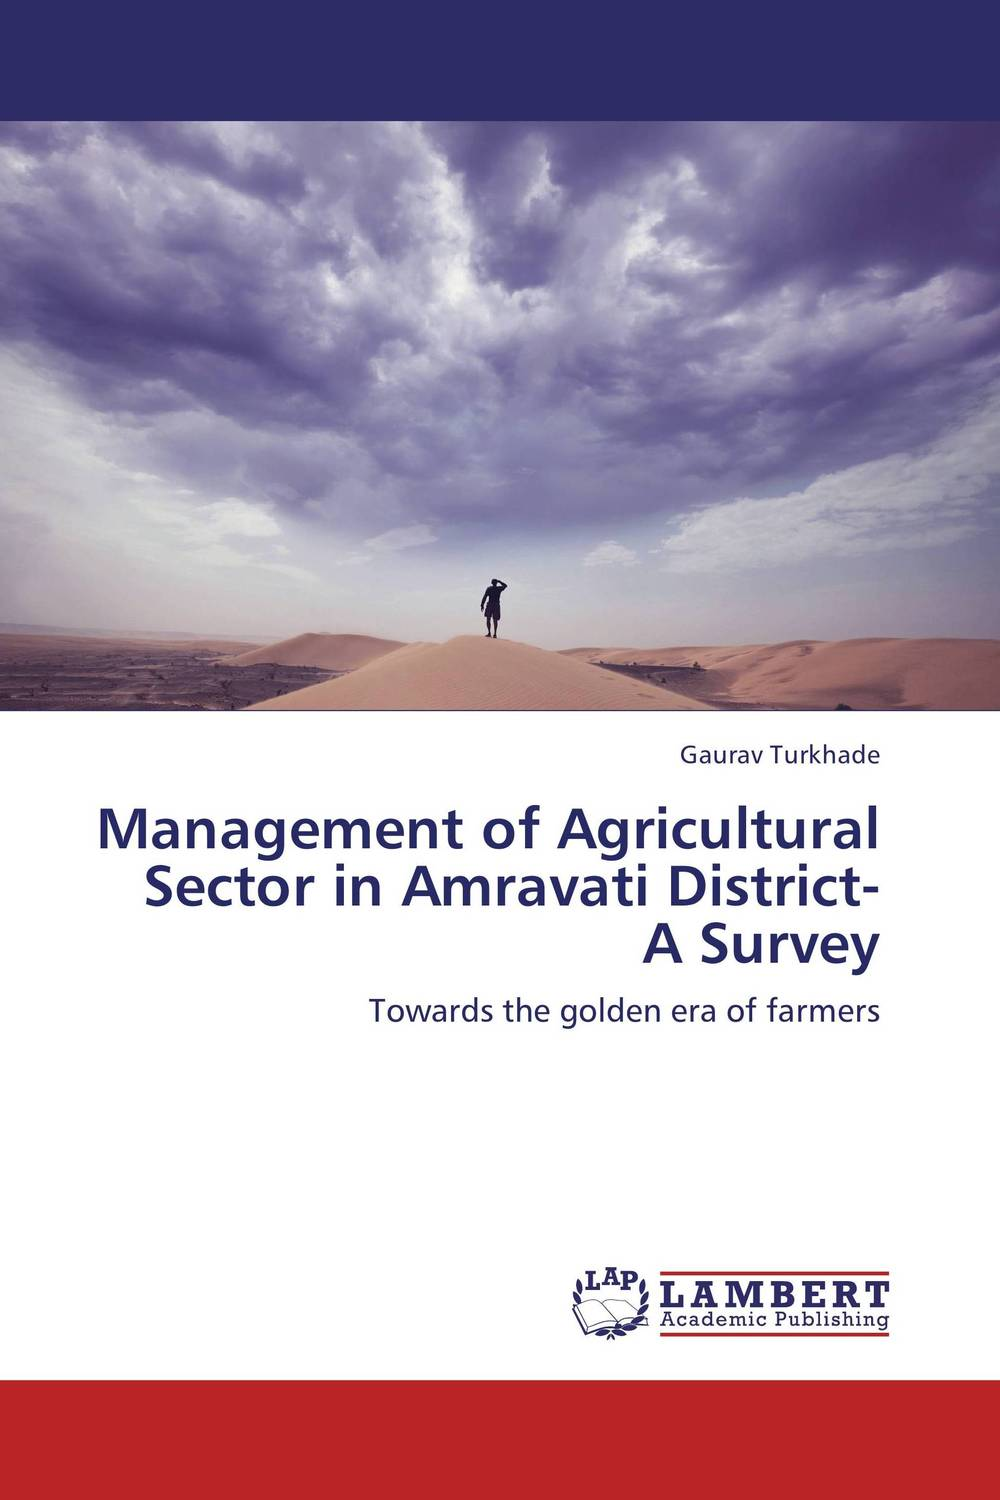 Management of Agricultural Sector in Amravati District- A Survey видеоигра для pc медиа rise of the tomb raider 20 летний юбилей